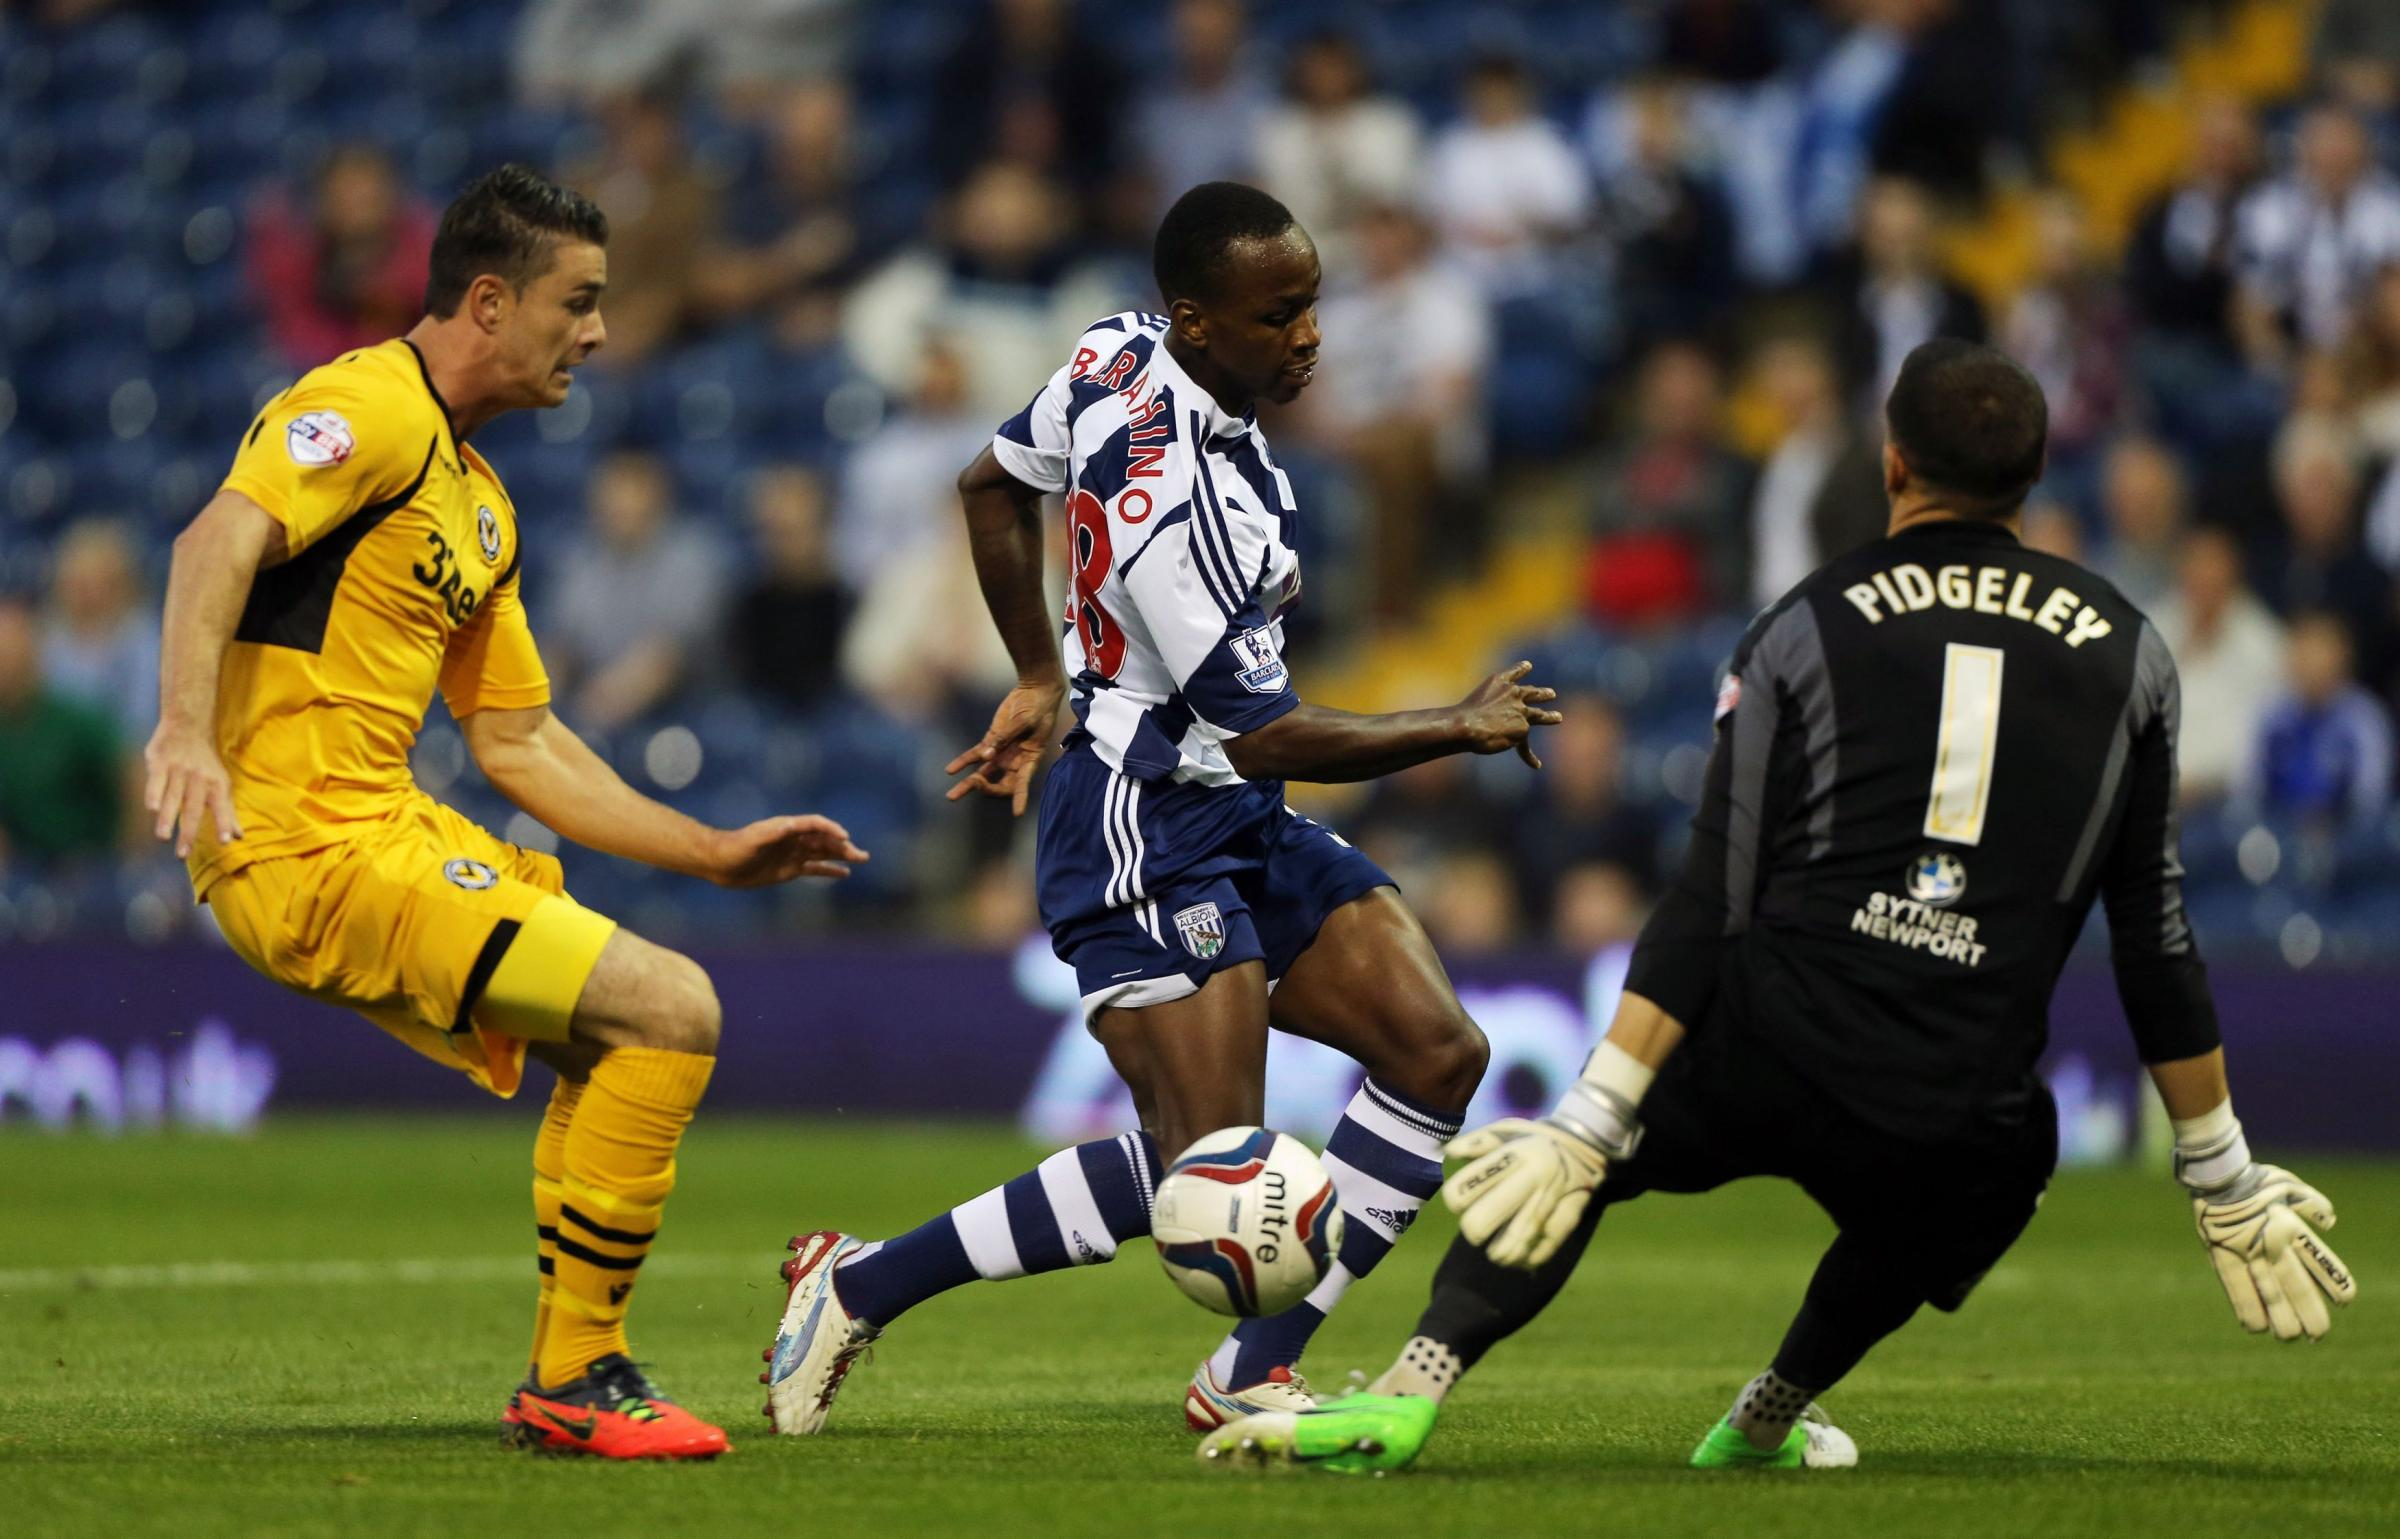 HAT TRICK HERO: West Bromwich Albion's Saido Berahino scores the opening goal beating Newport County goalkeeper Lenny Pidgeley during the Capital One Cup, Second Round match at The Hawthorns